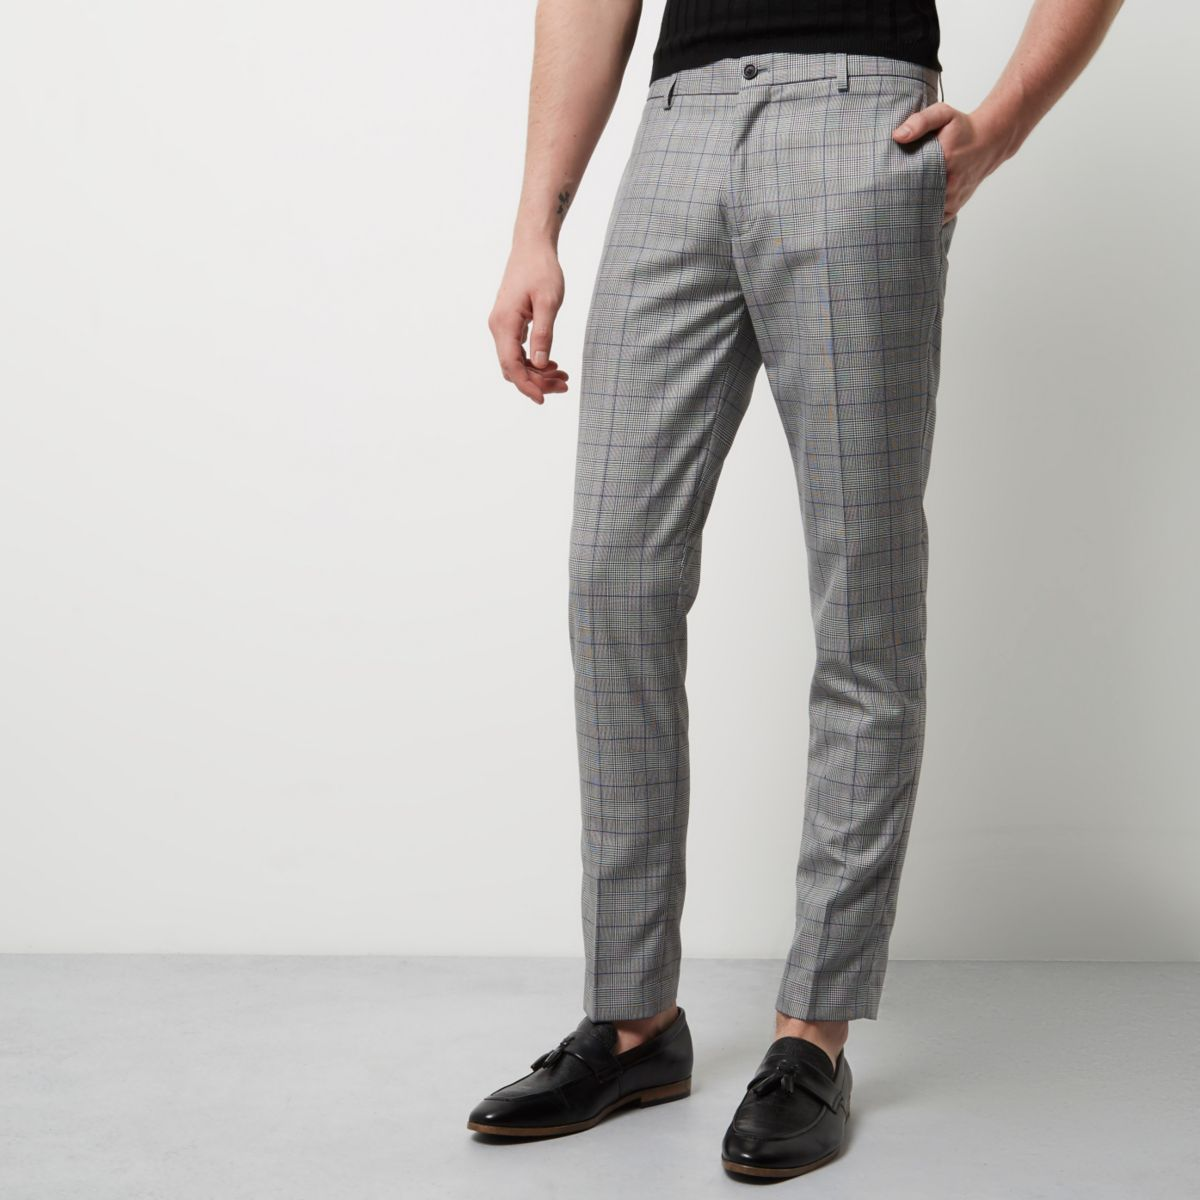 Choose from joggers or smart trousers in the boohooMAN mens trousers sale. Browse cheap men's trousers to find your perfect pair with up to 75% off.